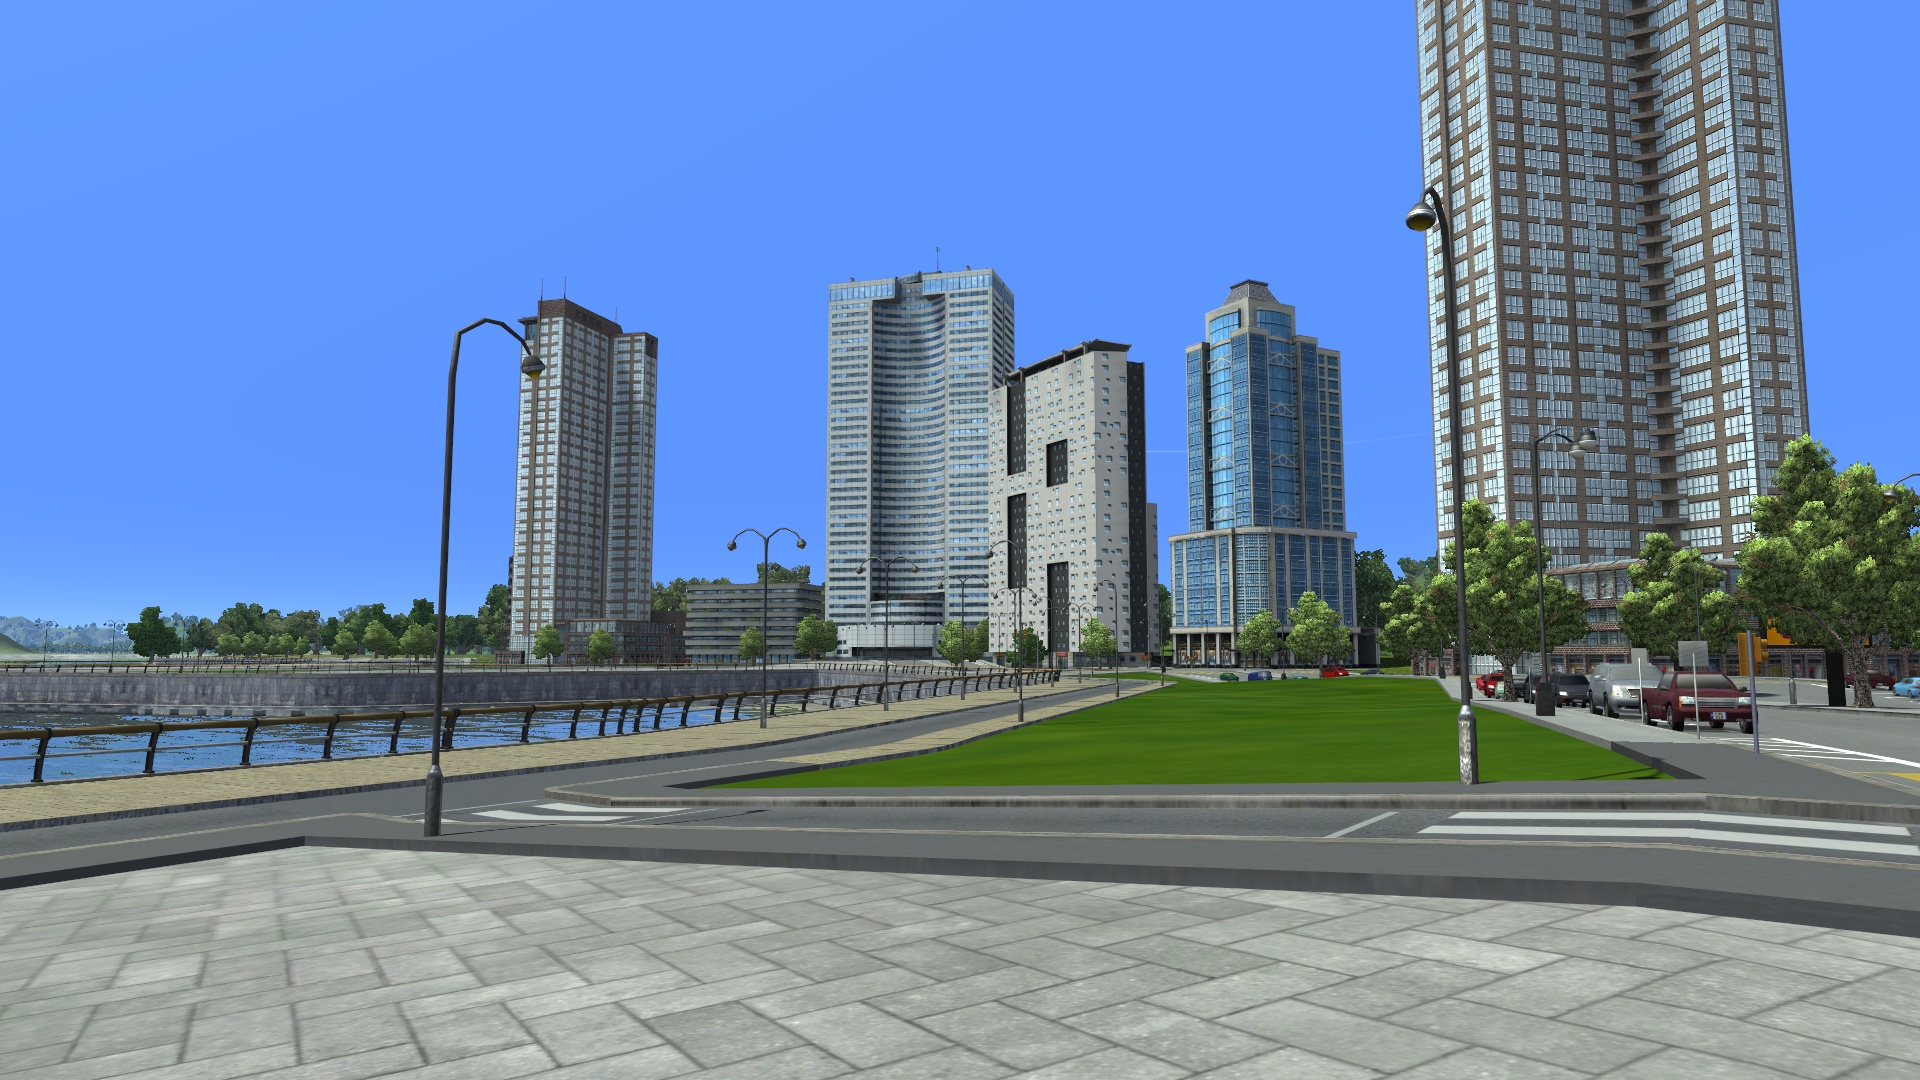 cxl_screenshot_harbour town_4.jpg